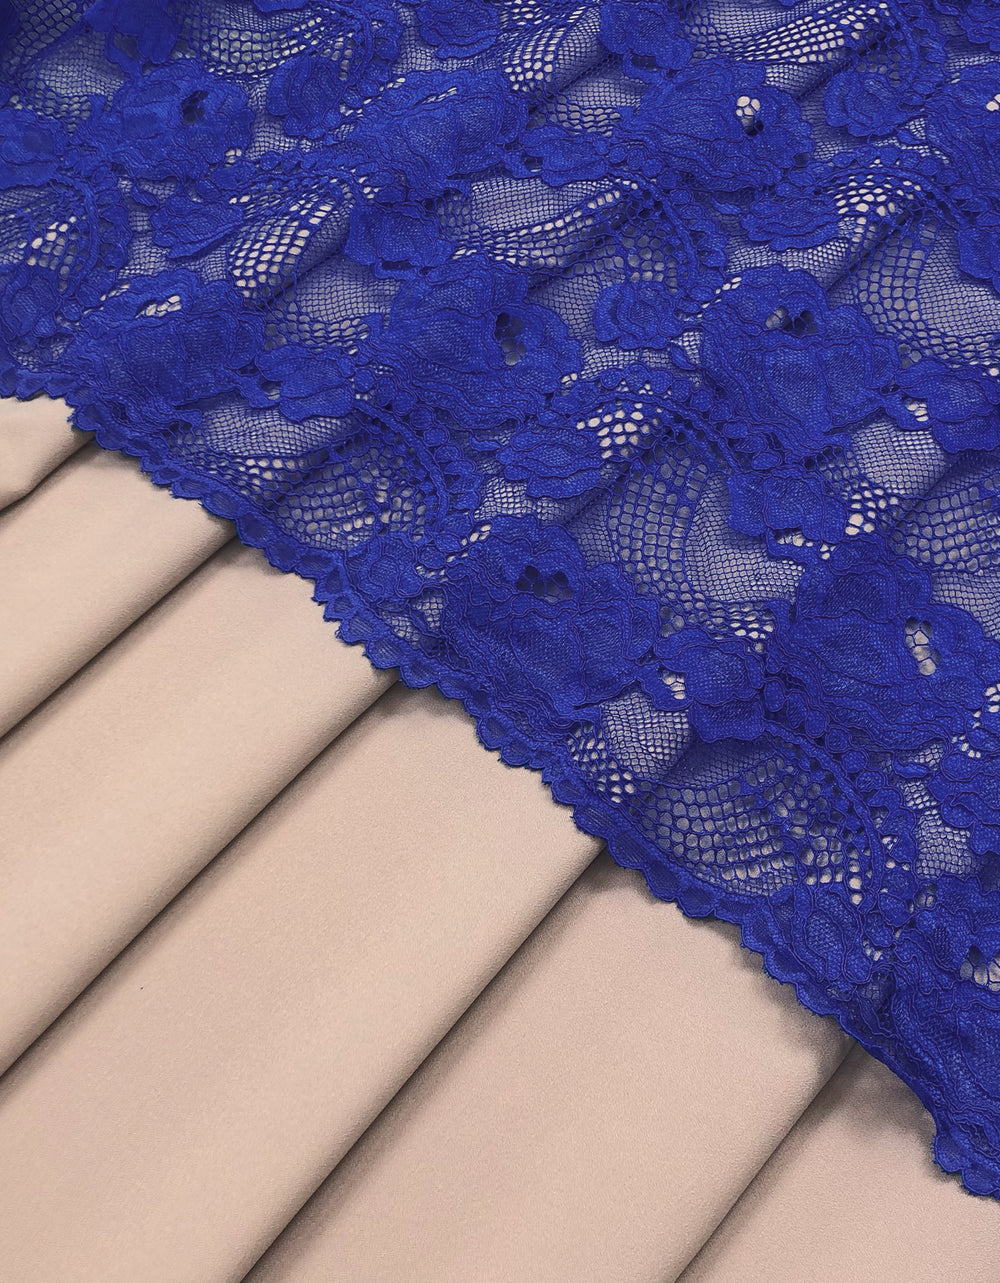 Single Tone Lace Royal Blue + Umo Crepe Nude (Waterfall Roses)